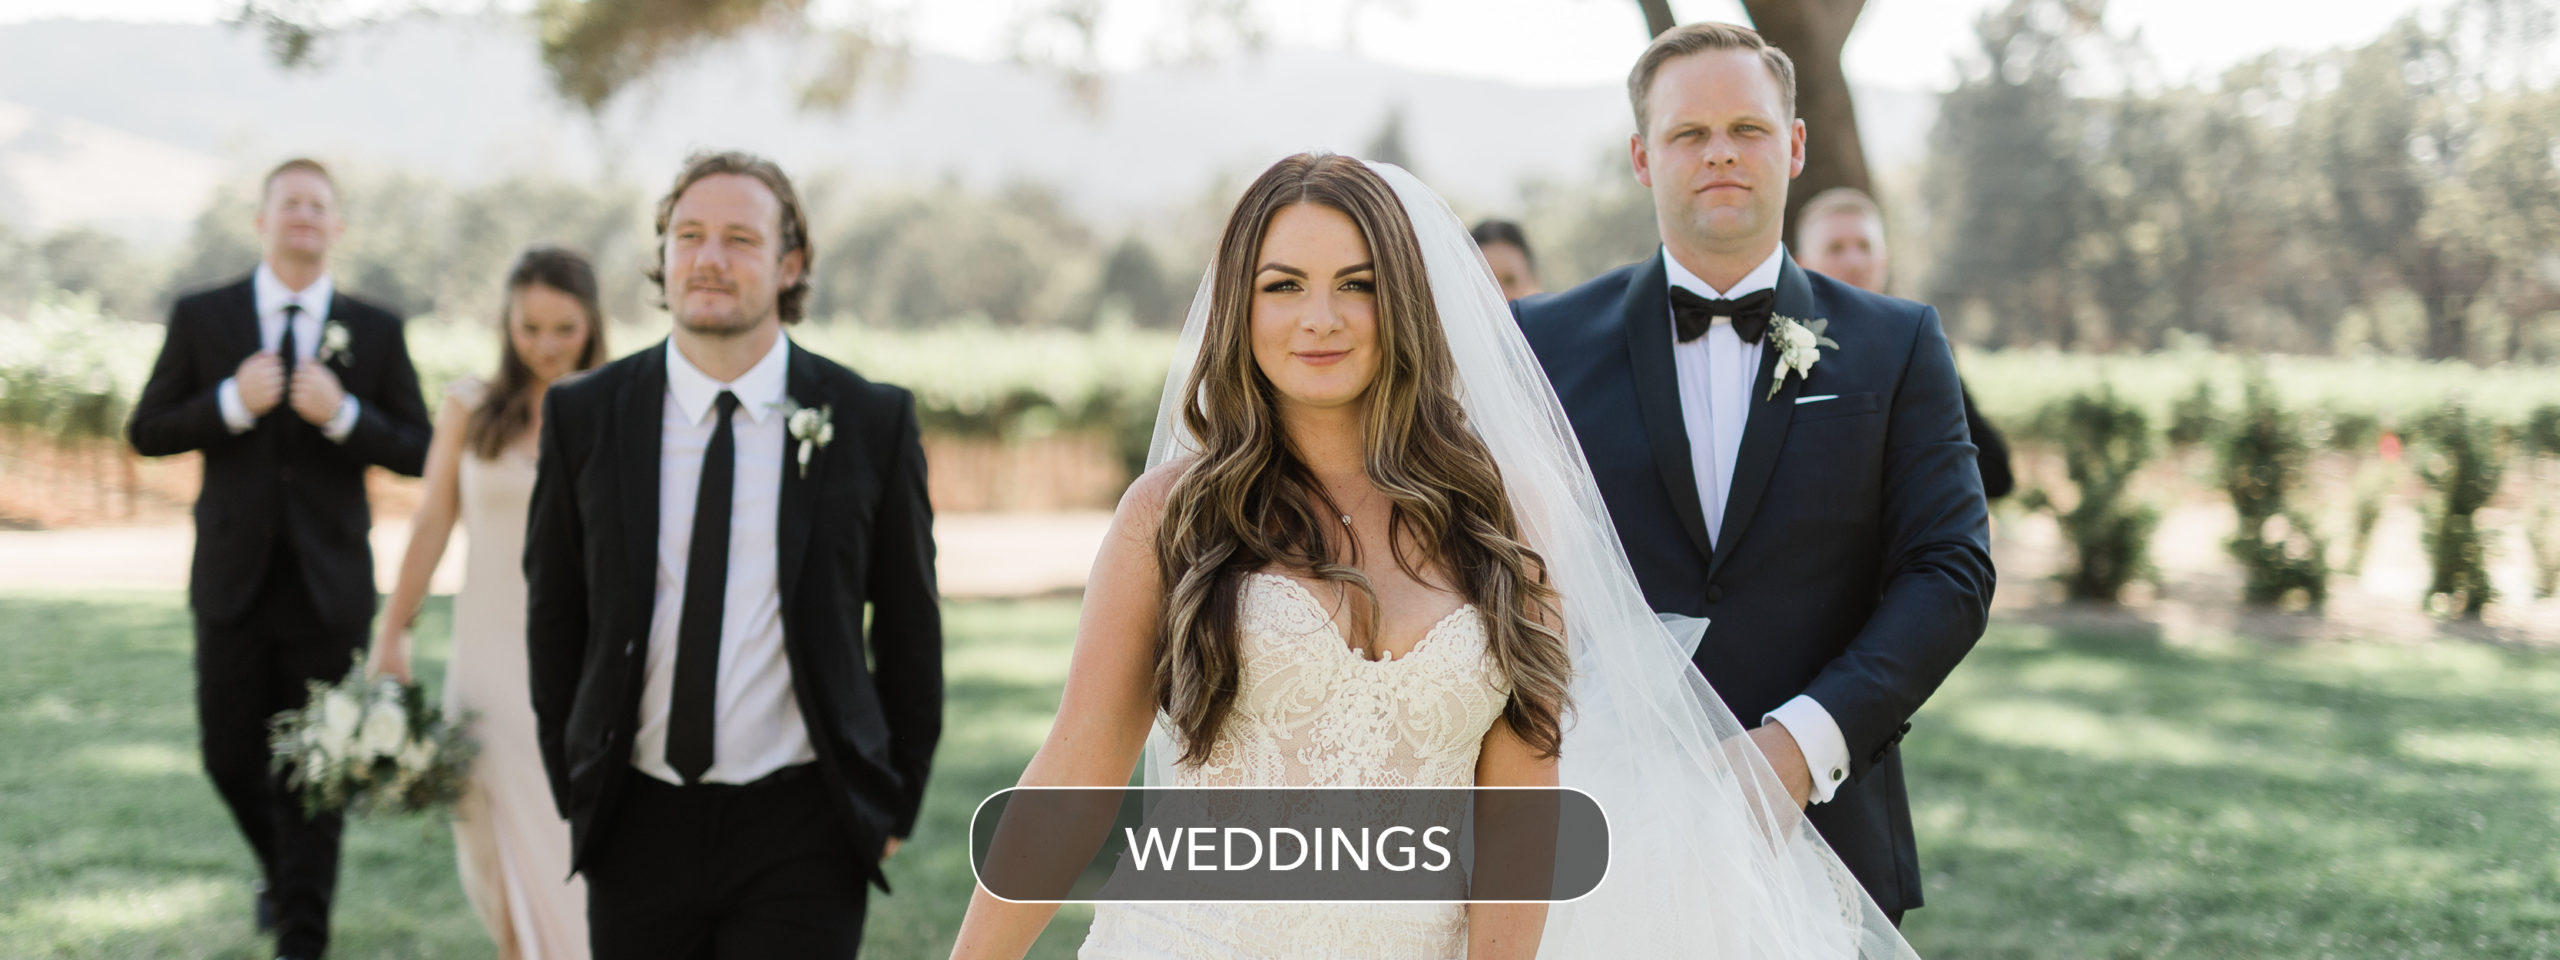 Click image to visit the Weddings Page